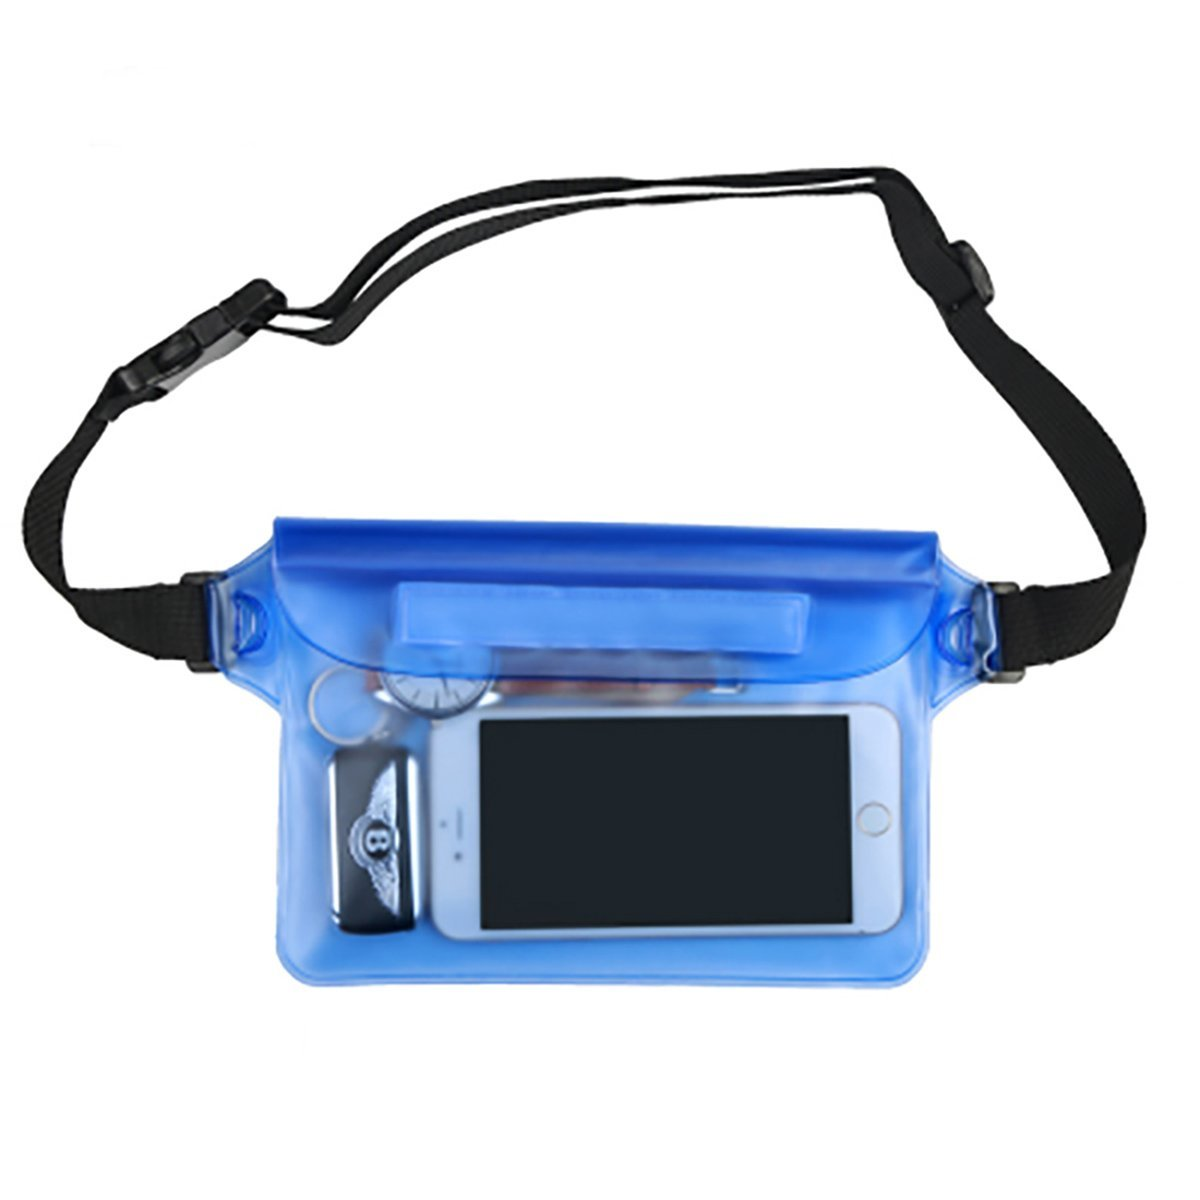 Get Quotations Ueetek Waterproof Case Dry Bag 2pcs Pvc Pouch For Phone Camera Wallet Beach Fishing